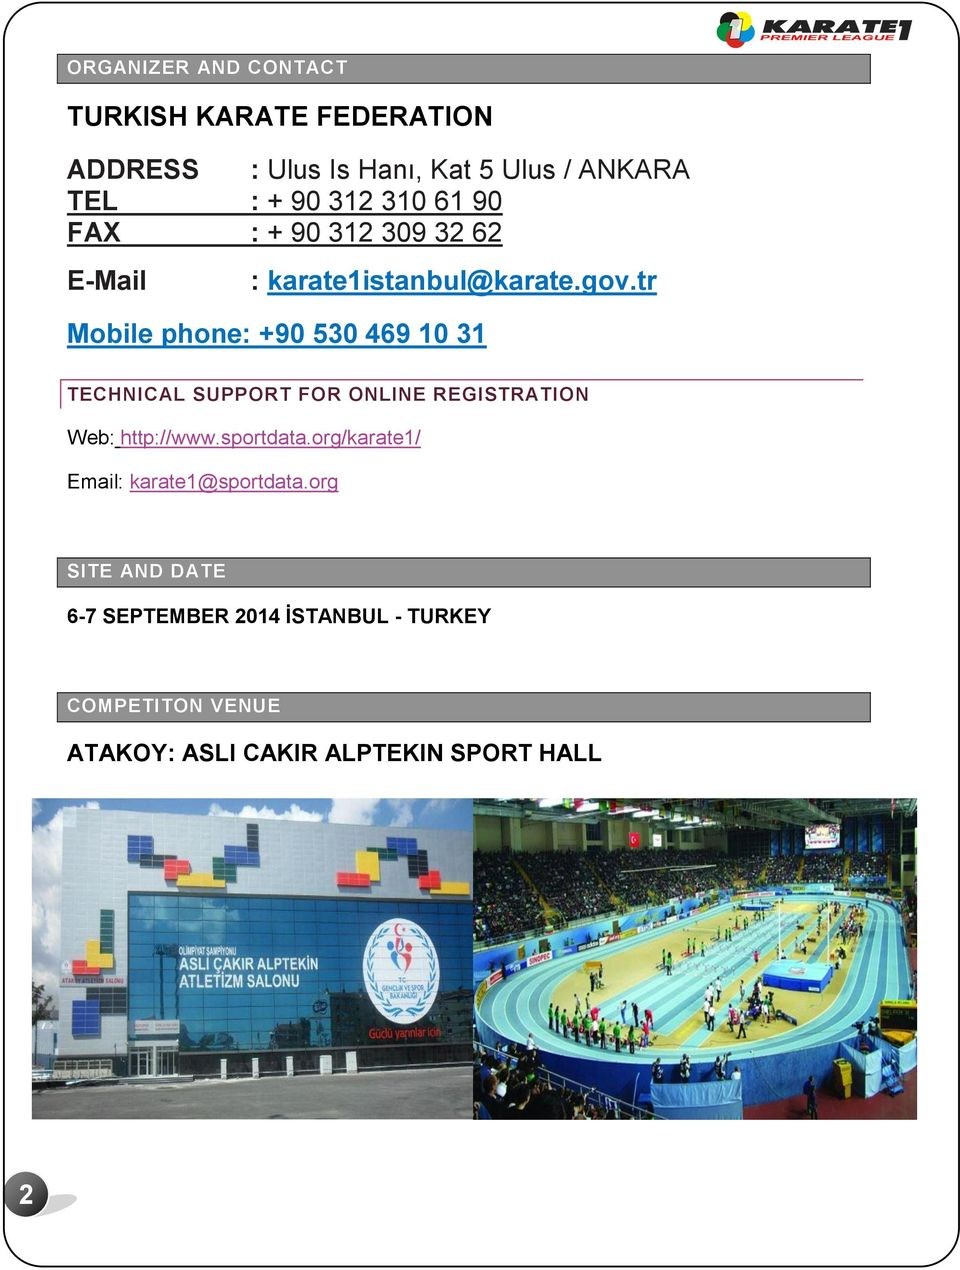 tr Mobile phone: +90 530 469 10 31 TECHNICAL SUPPORT FOR ONLINE REGISTRATION Web: http://www.sportdata.